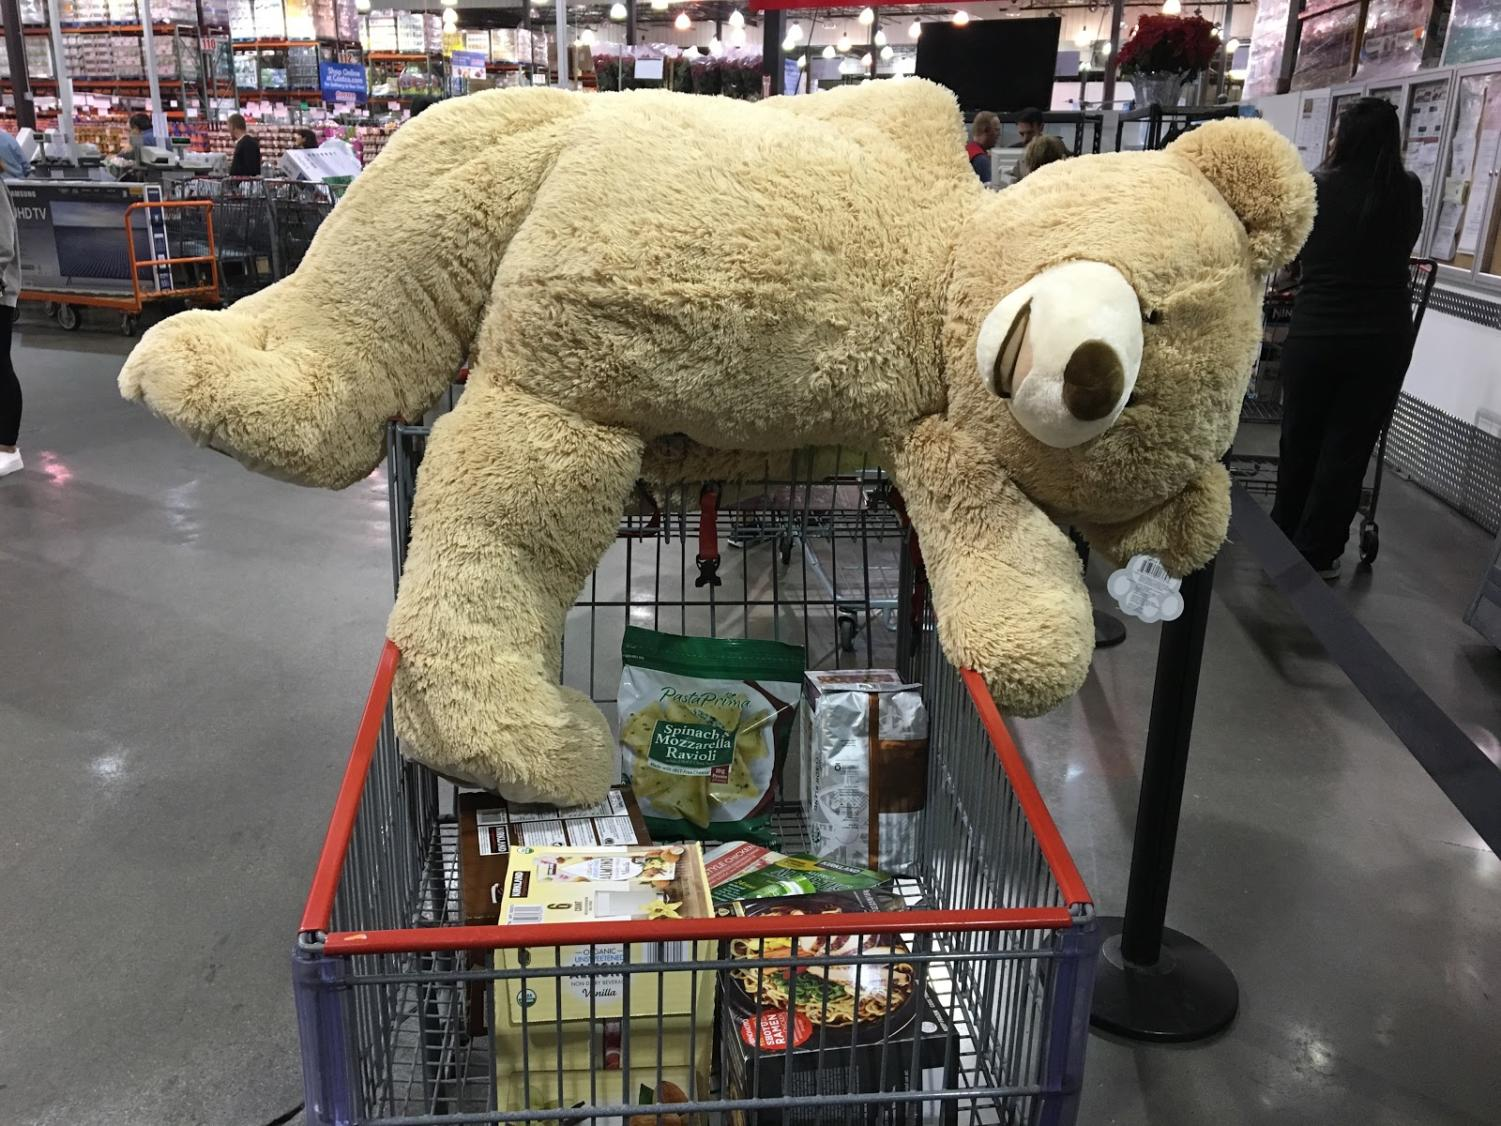 Just another teddy bear waiting to go to a good home and collect dust for years.